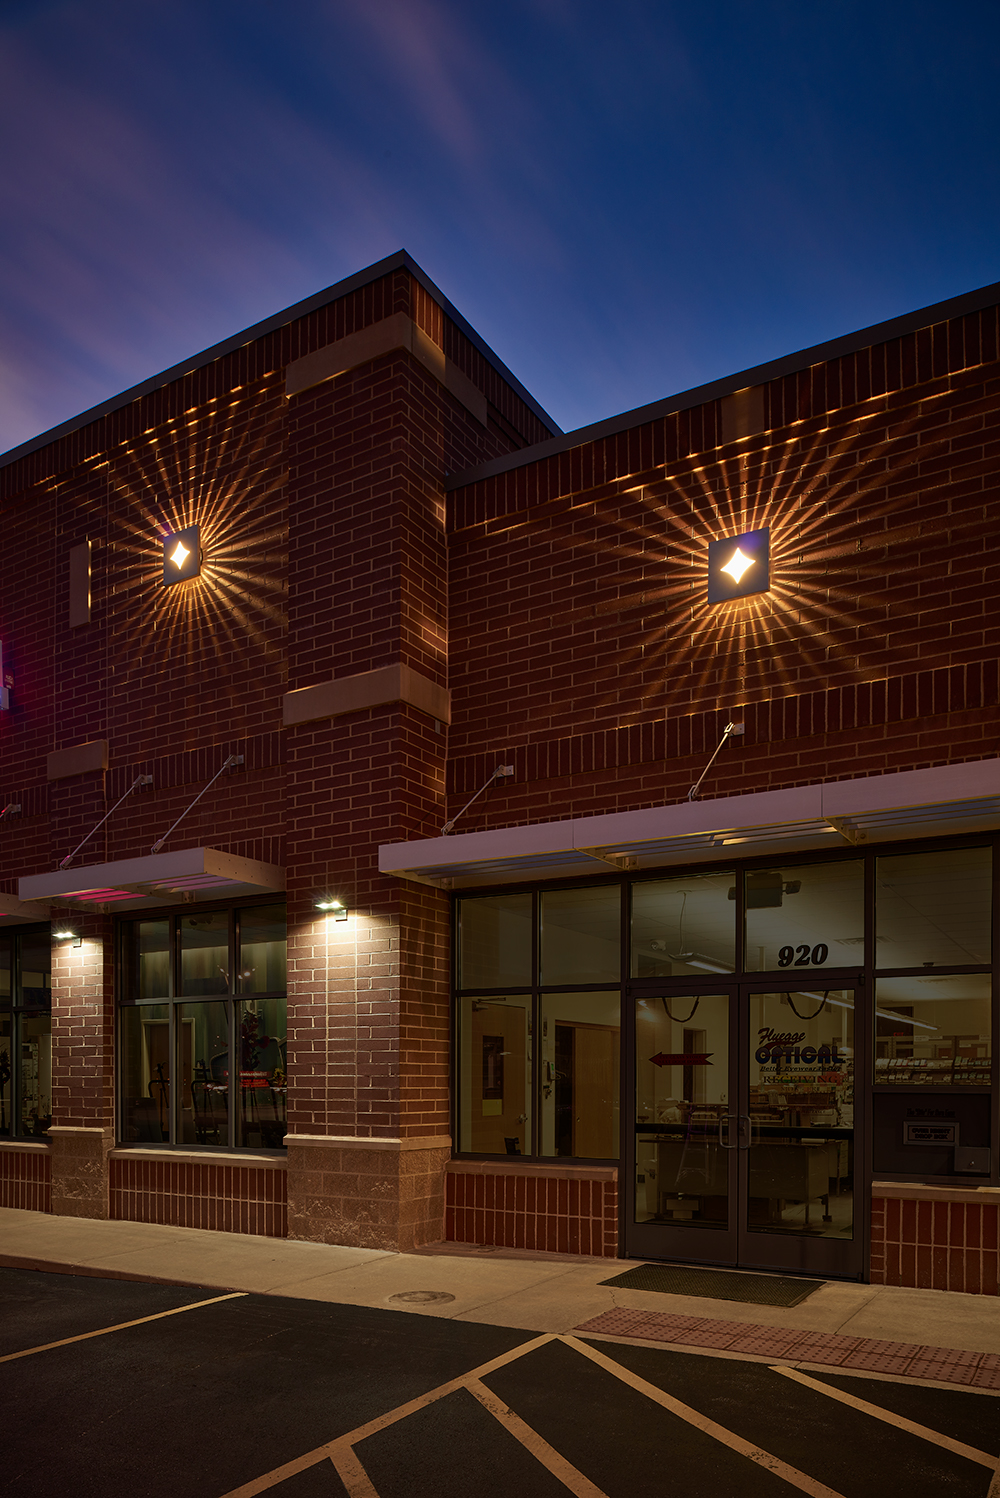 Lightshower outdoor light fixtures display a pattern of light across a store exterior at night.